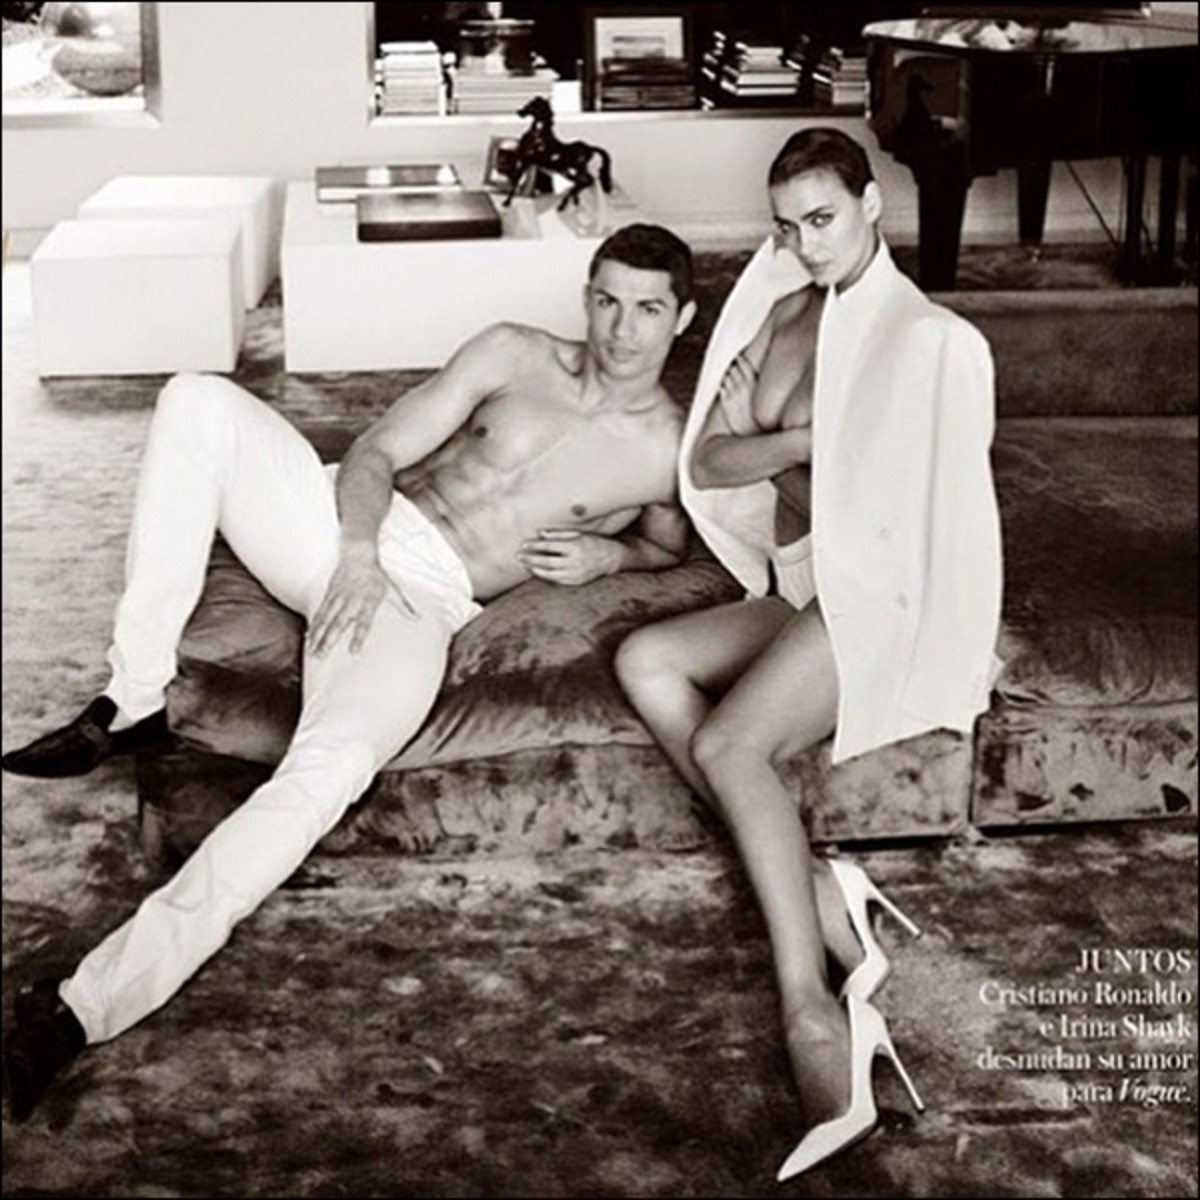 Cristiano Ronaldo and Irina Shayk :: Mario Testino for Vogue España